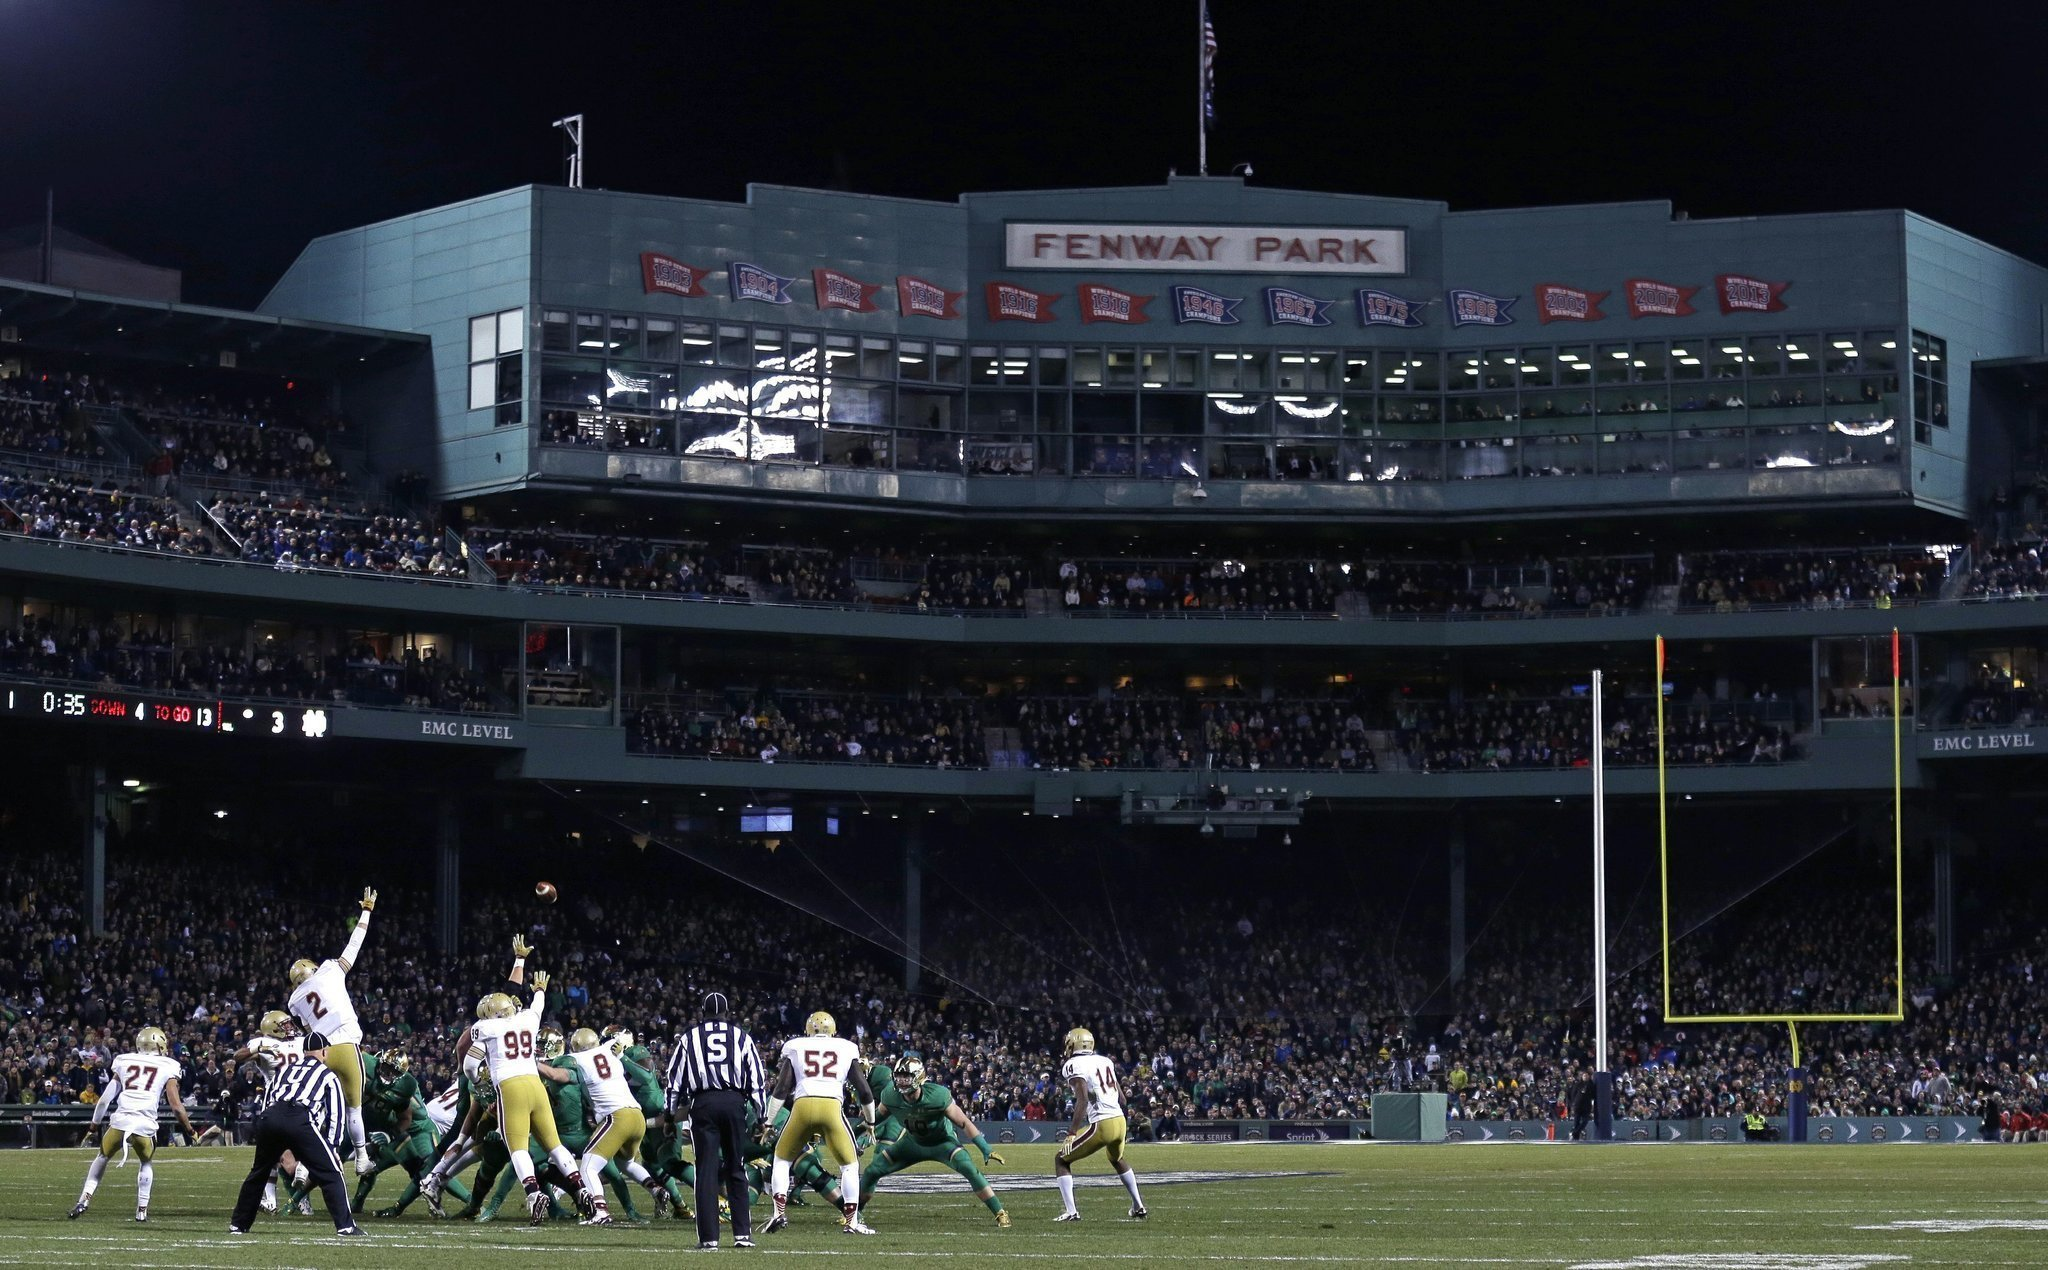 5 Notre Dame Beats Boston College 19 16 At Fenway Park